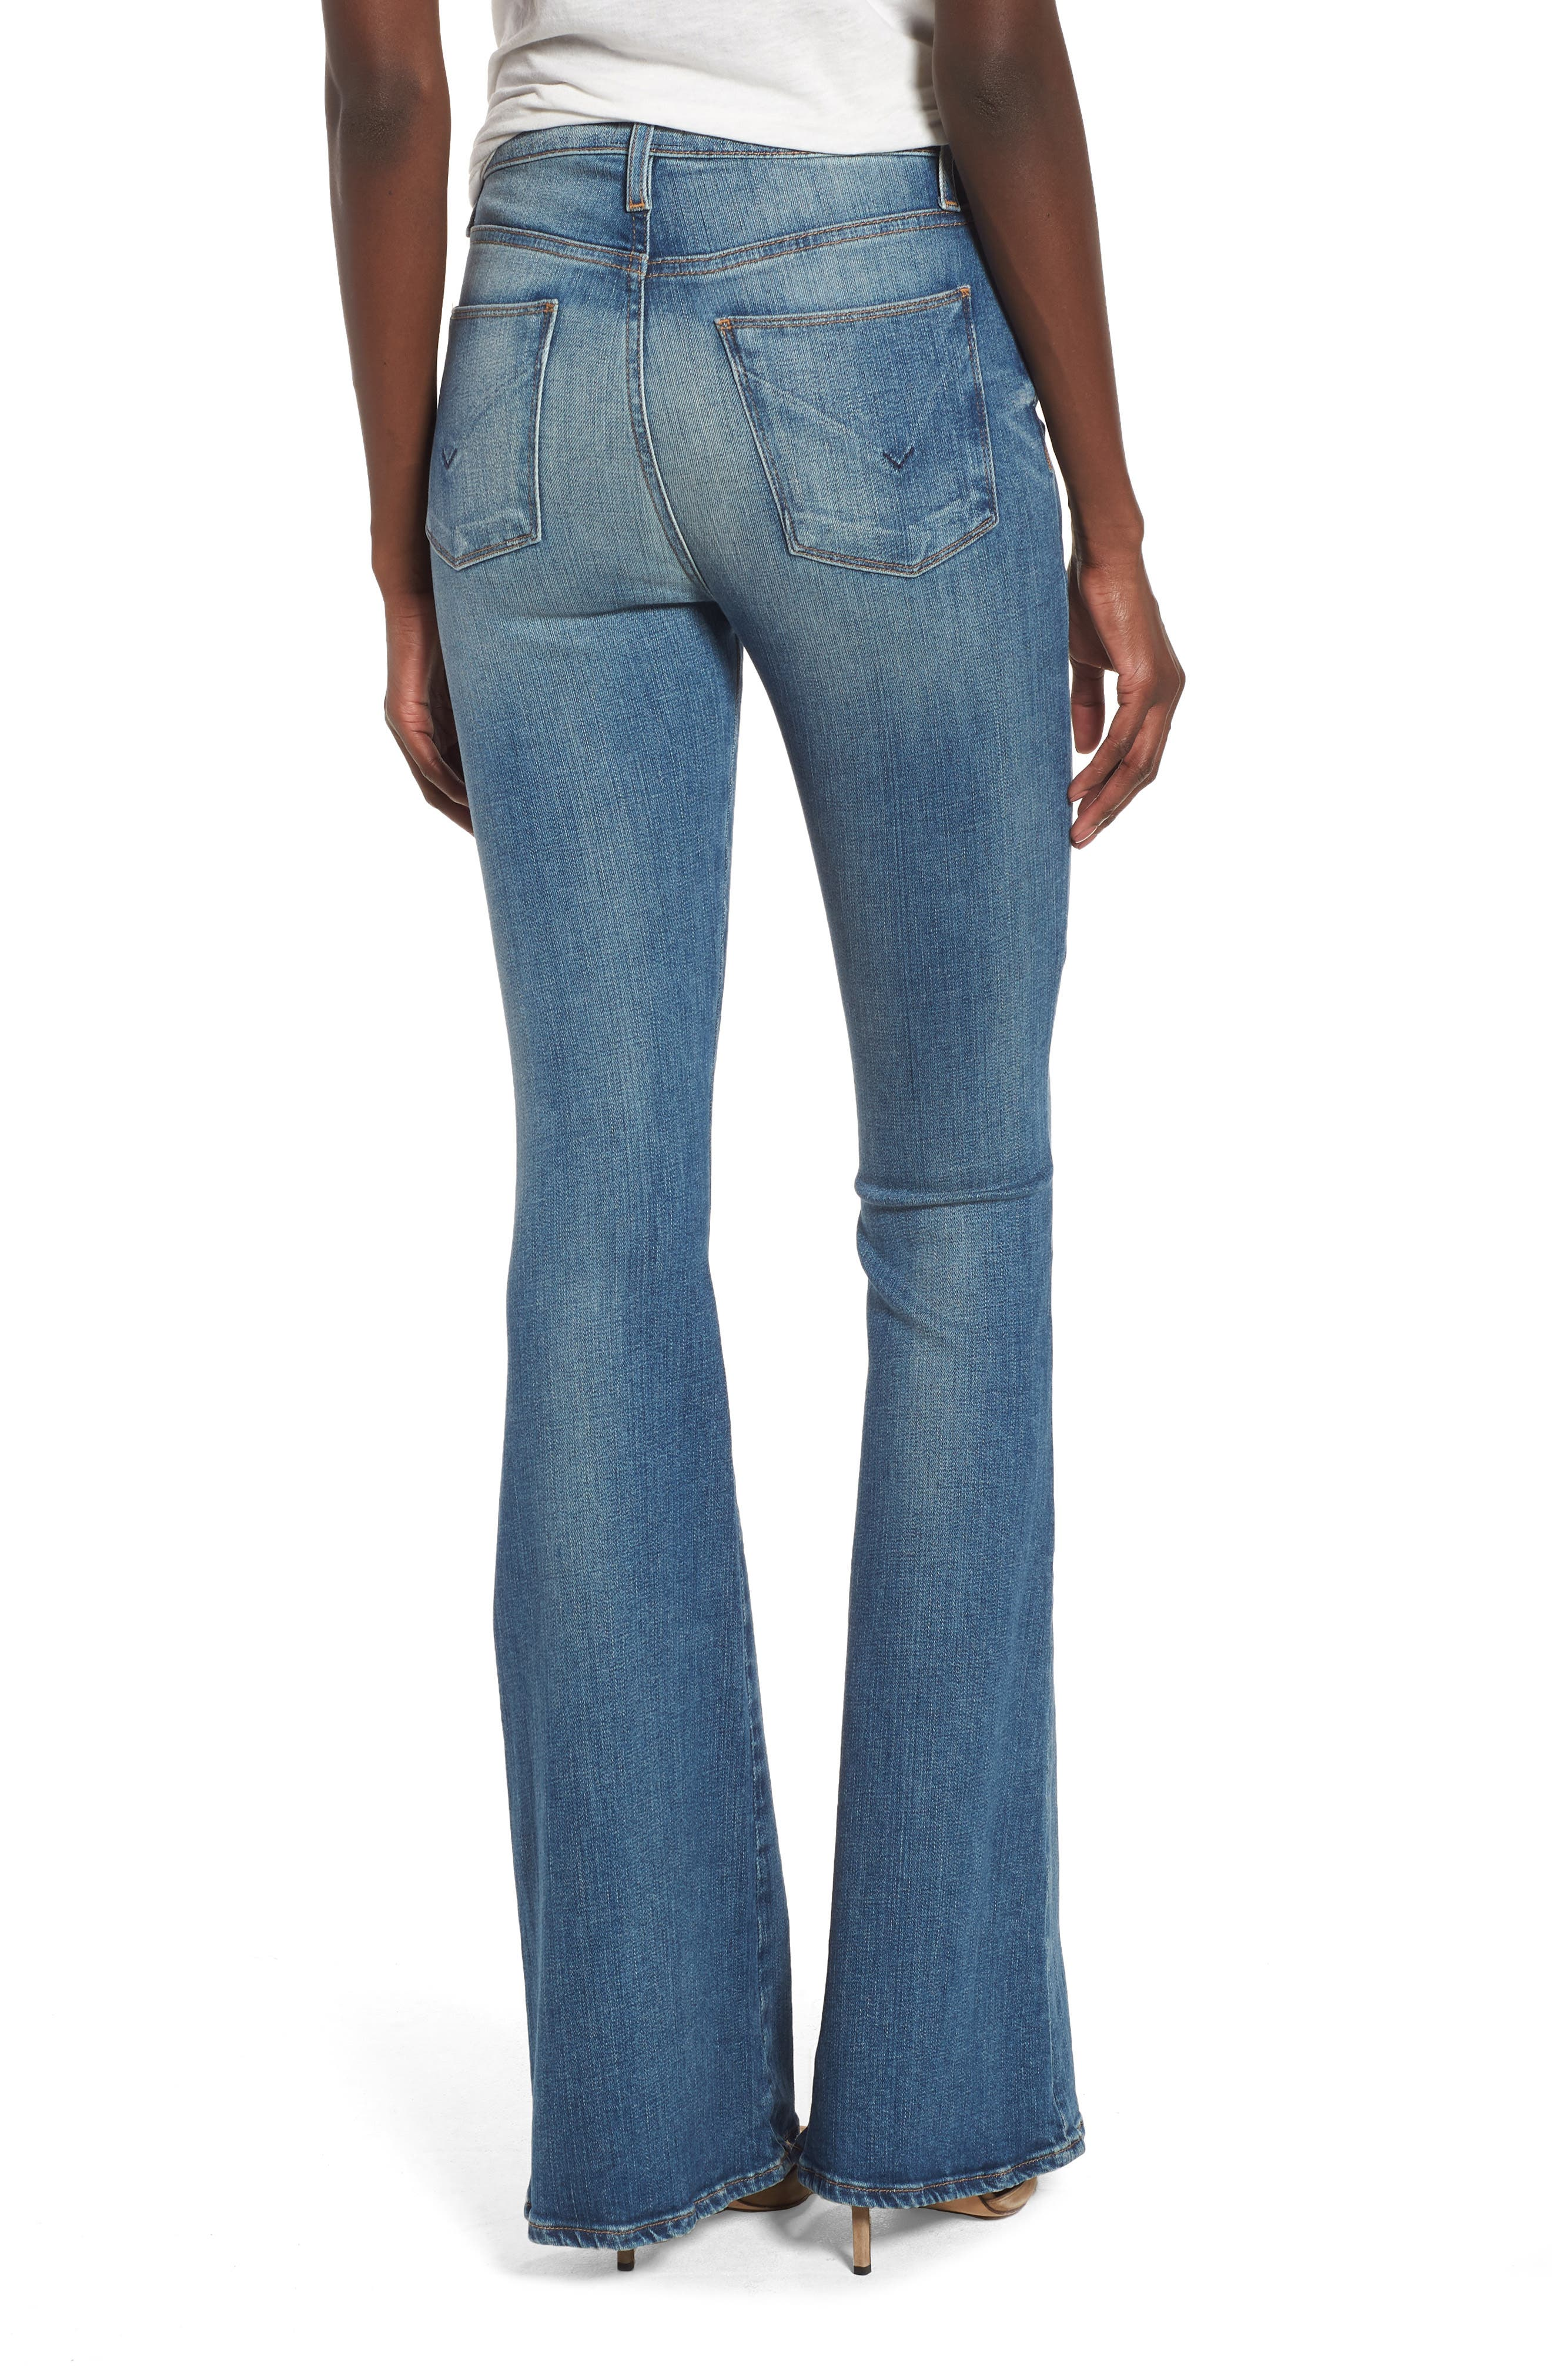 Holly High Waist Flare Jeans,                             Alternate thumbnail 3, color,                             First Date